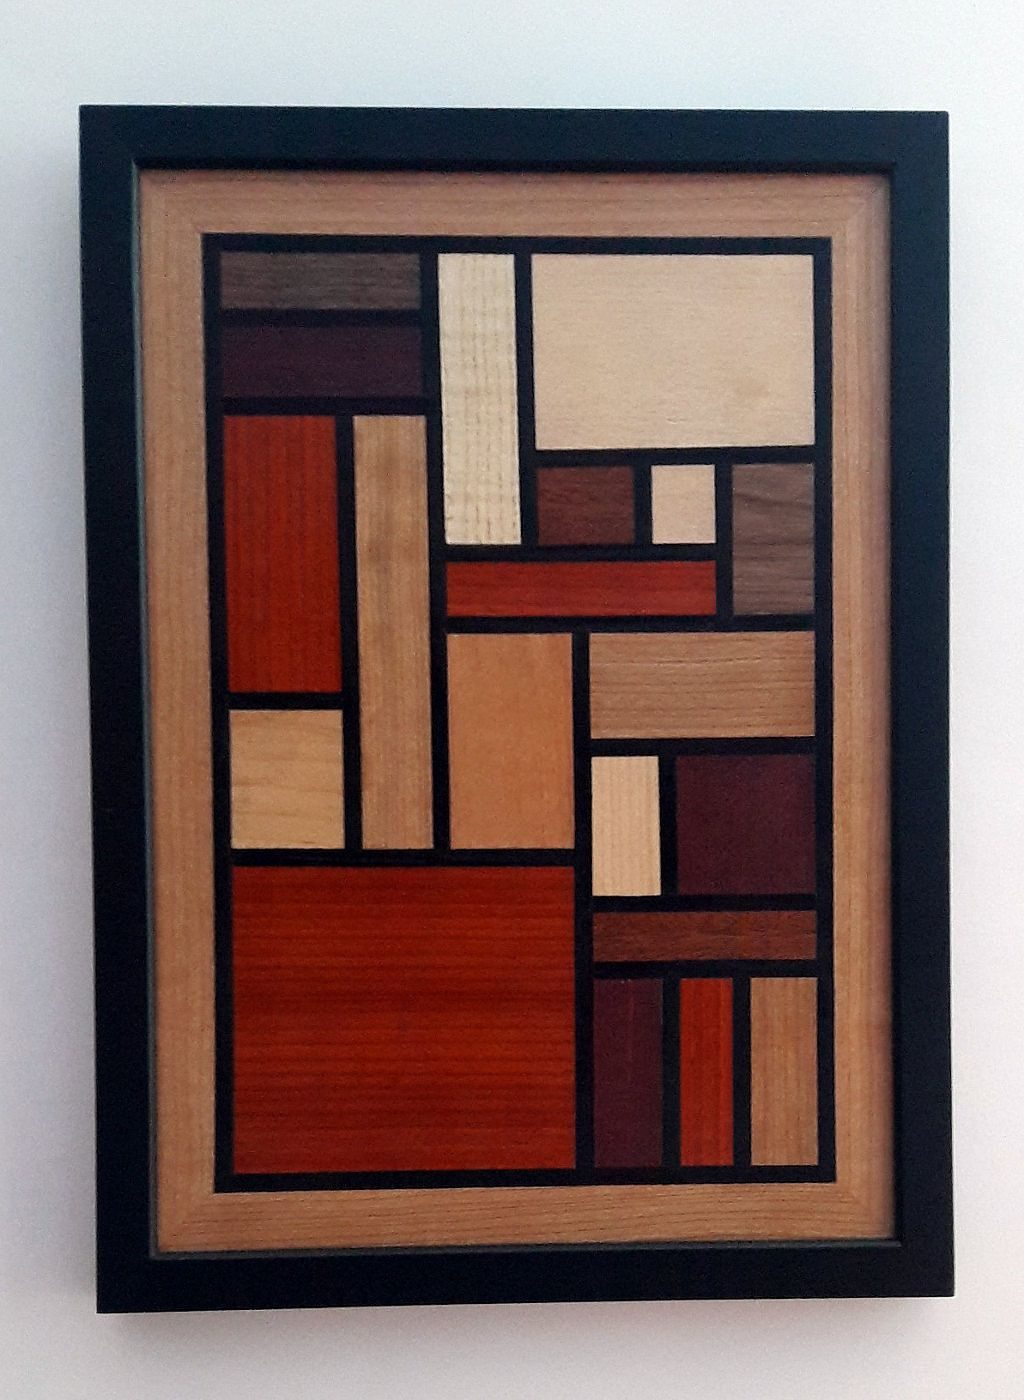 Abstract minimalist wood wall art httpsetsyme2grwoqy